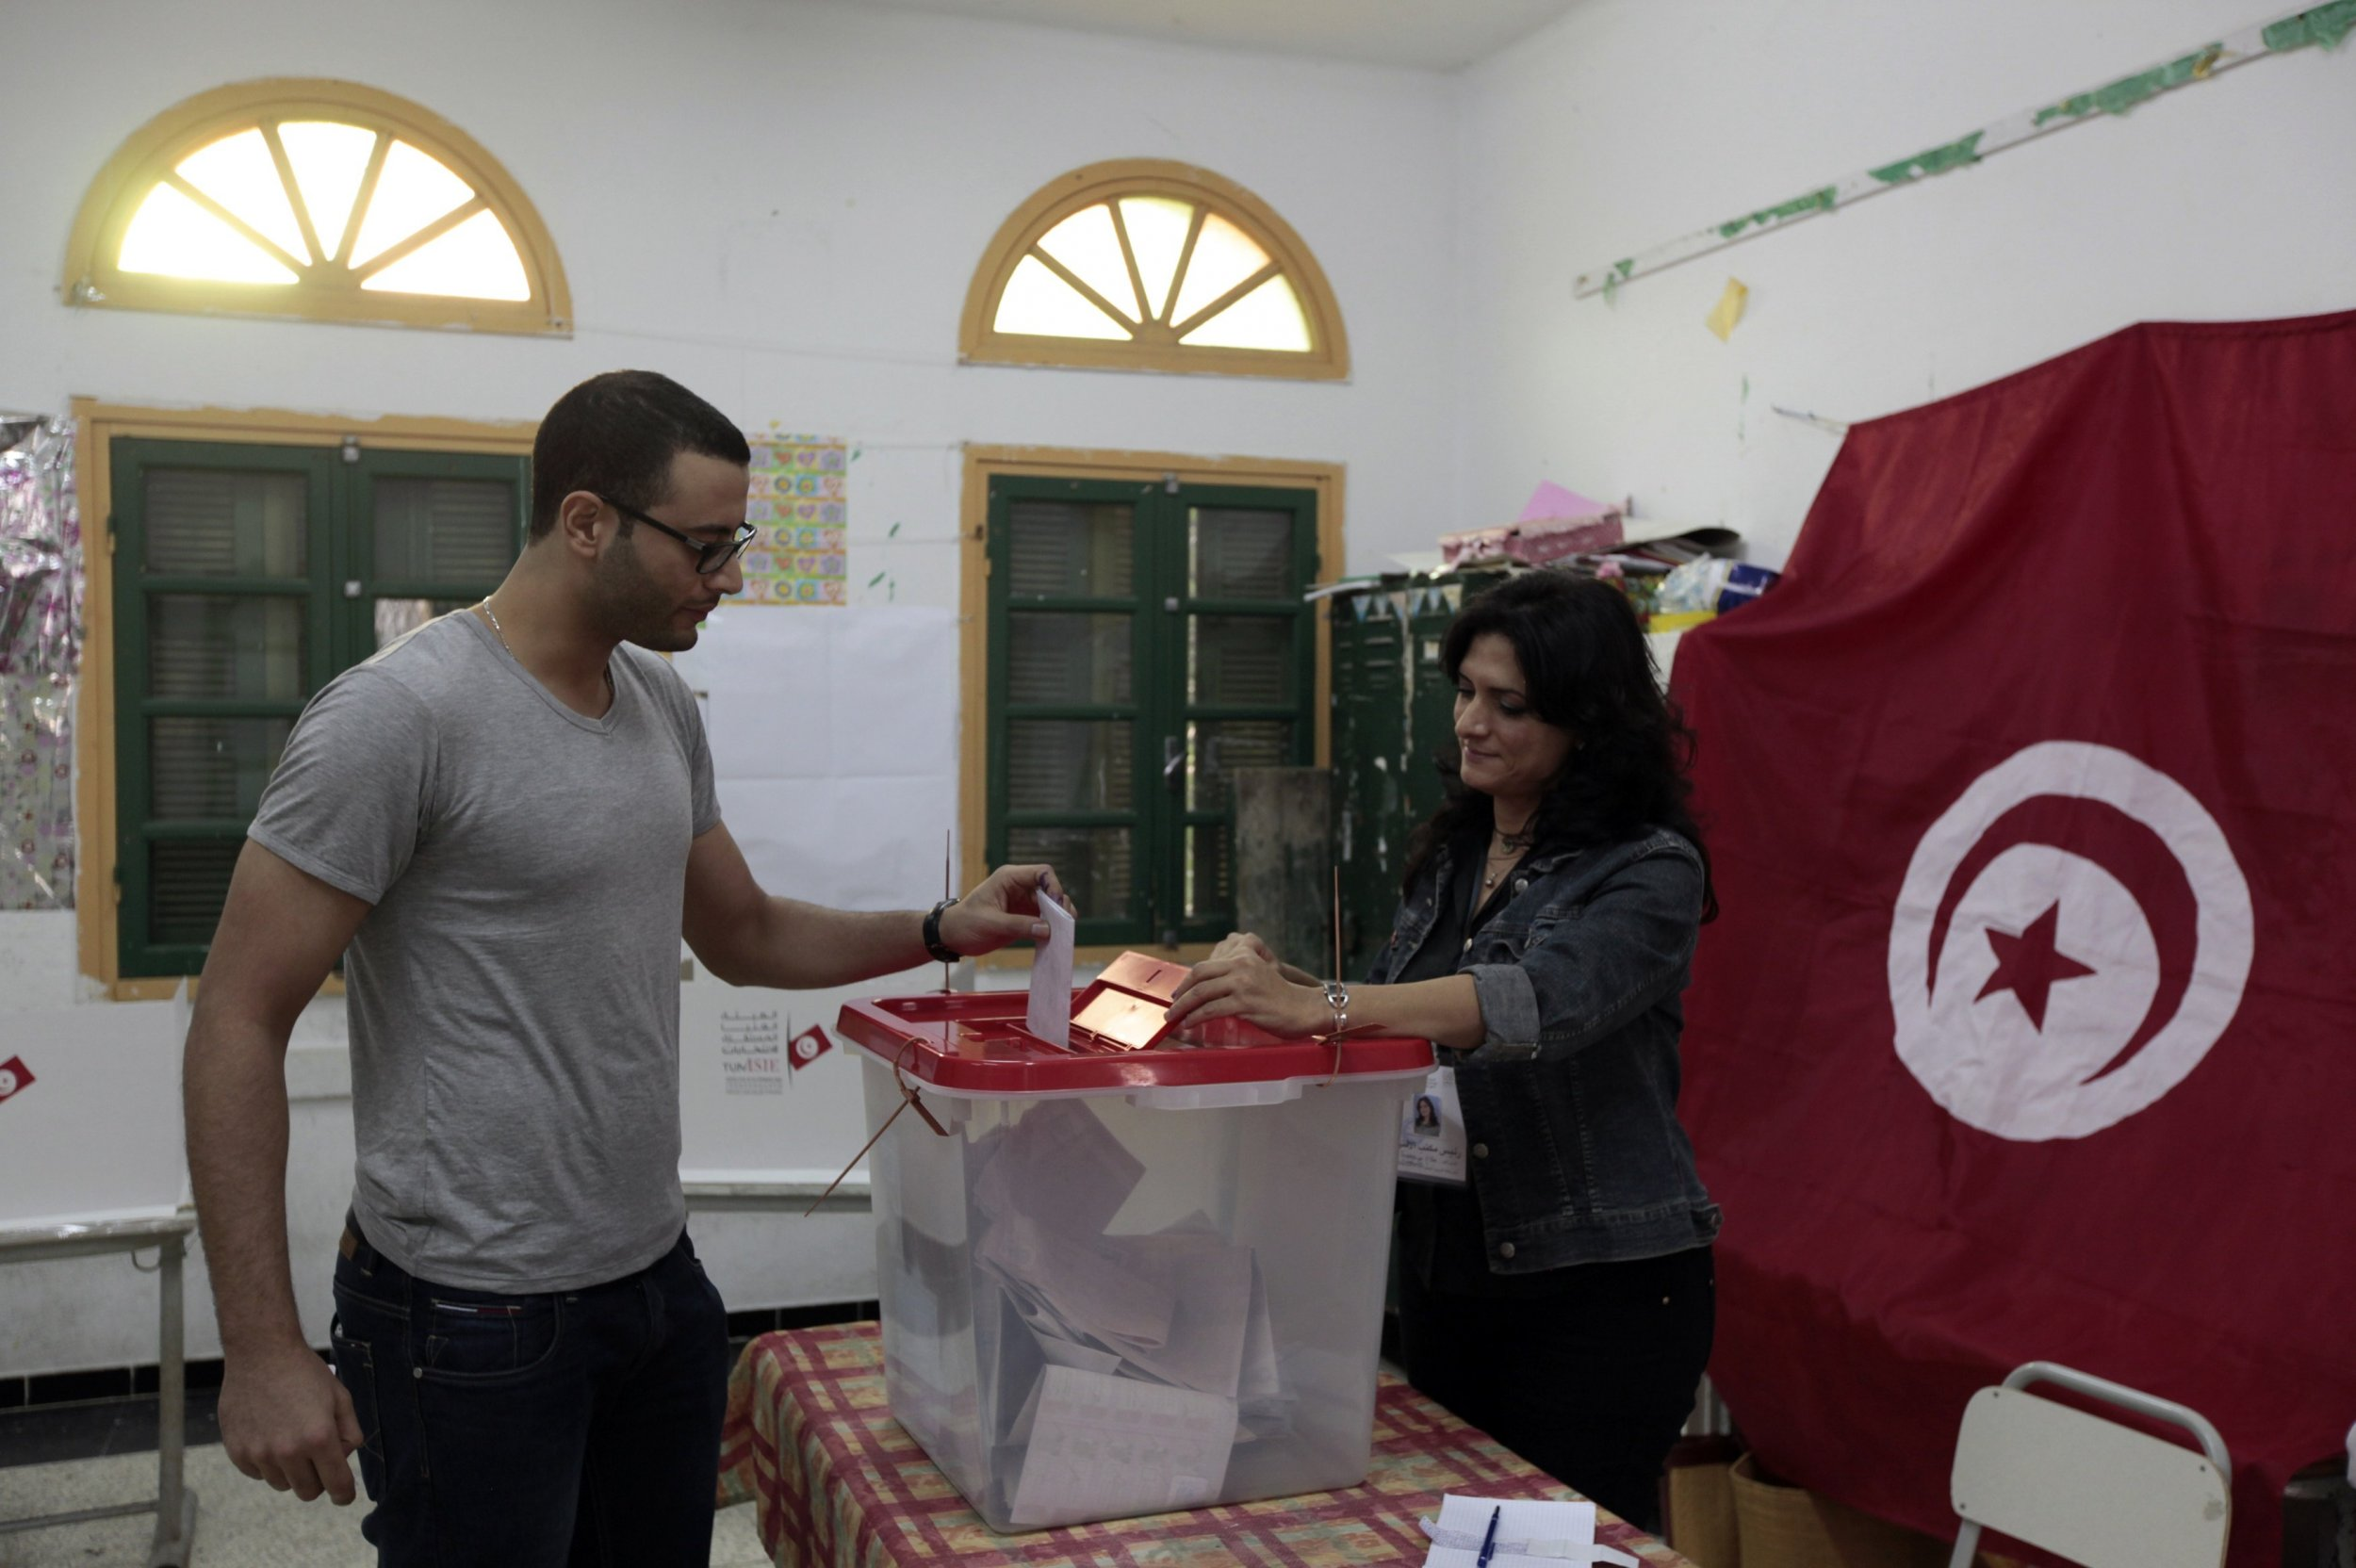 11-23-14 Tunisia elections